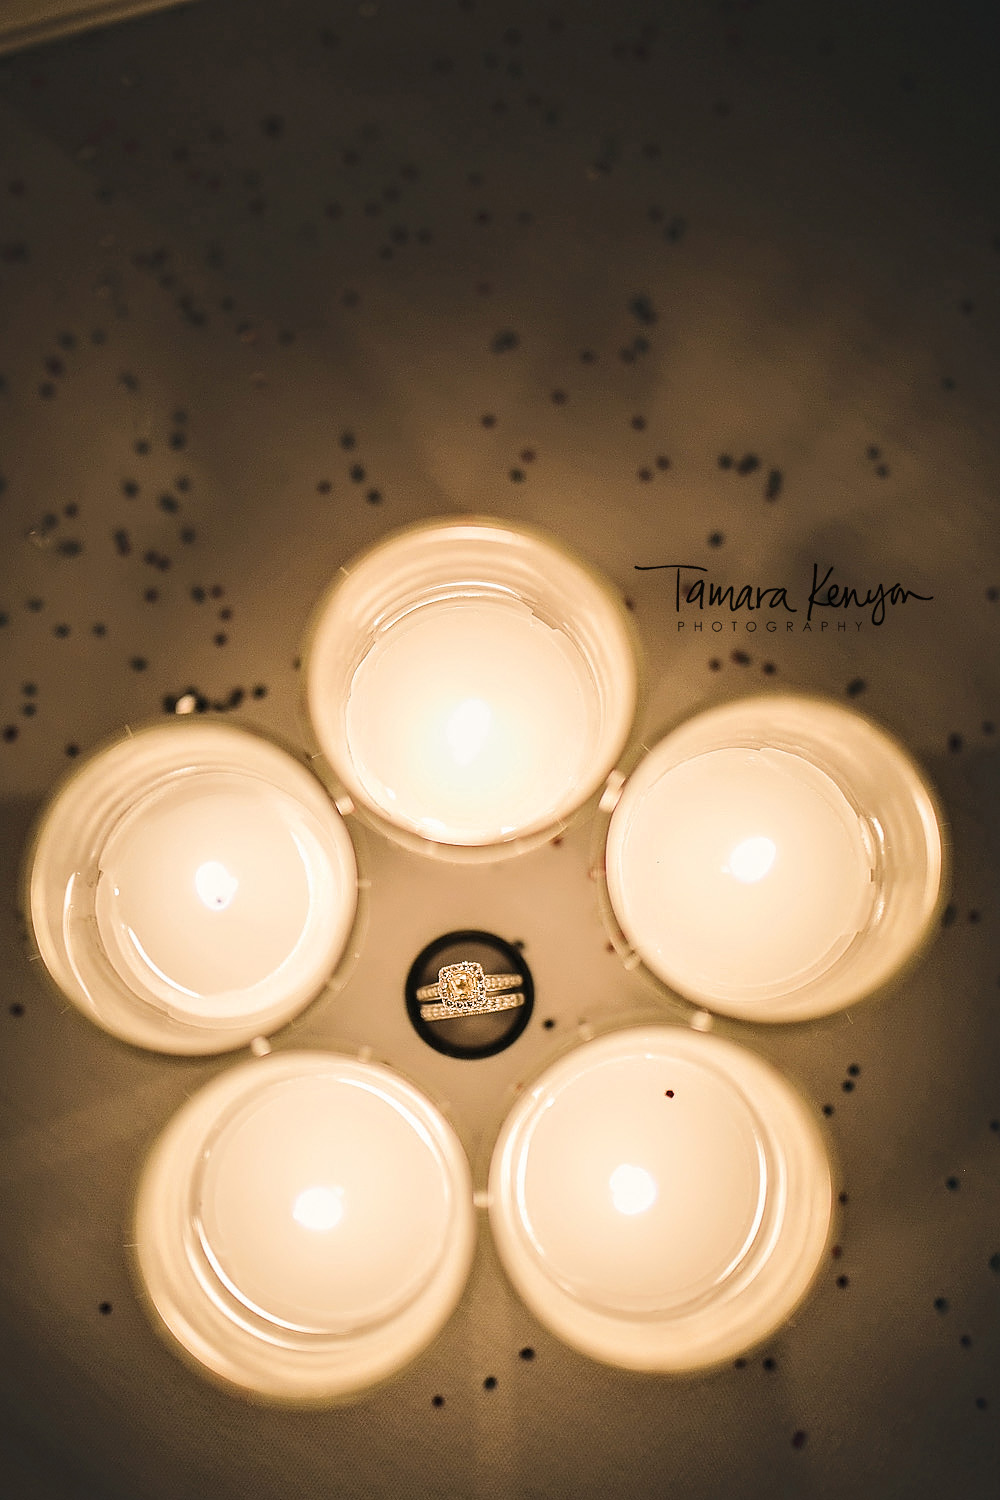 wedding ring photo with candles